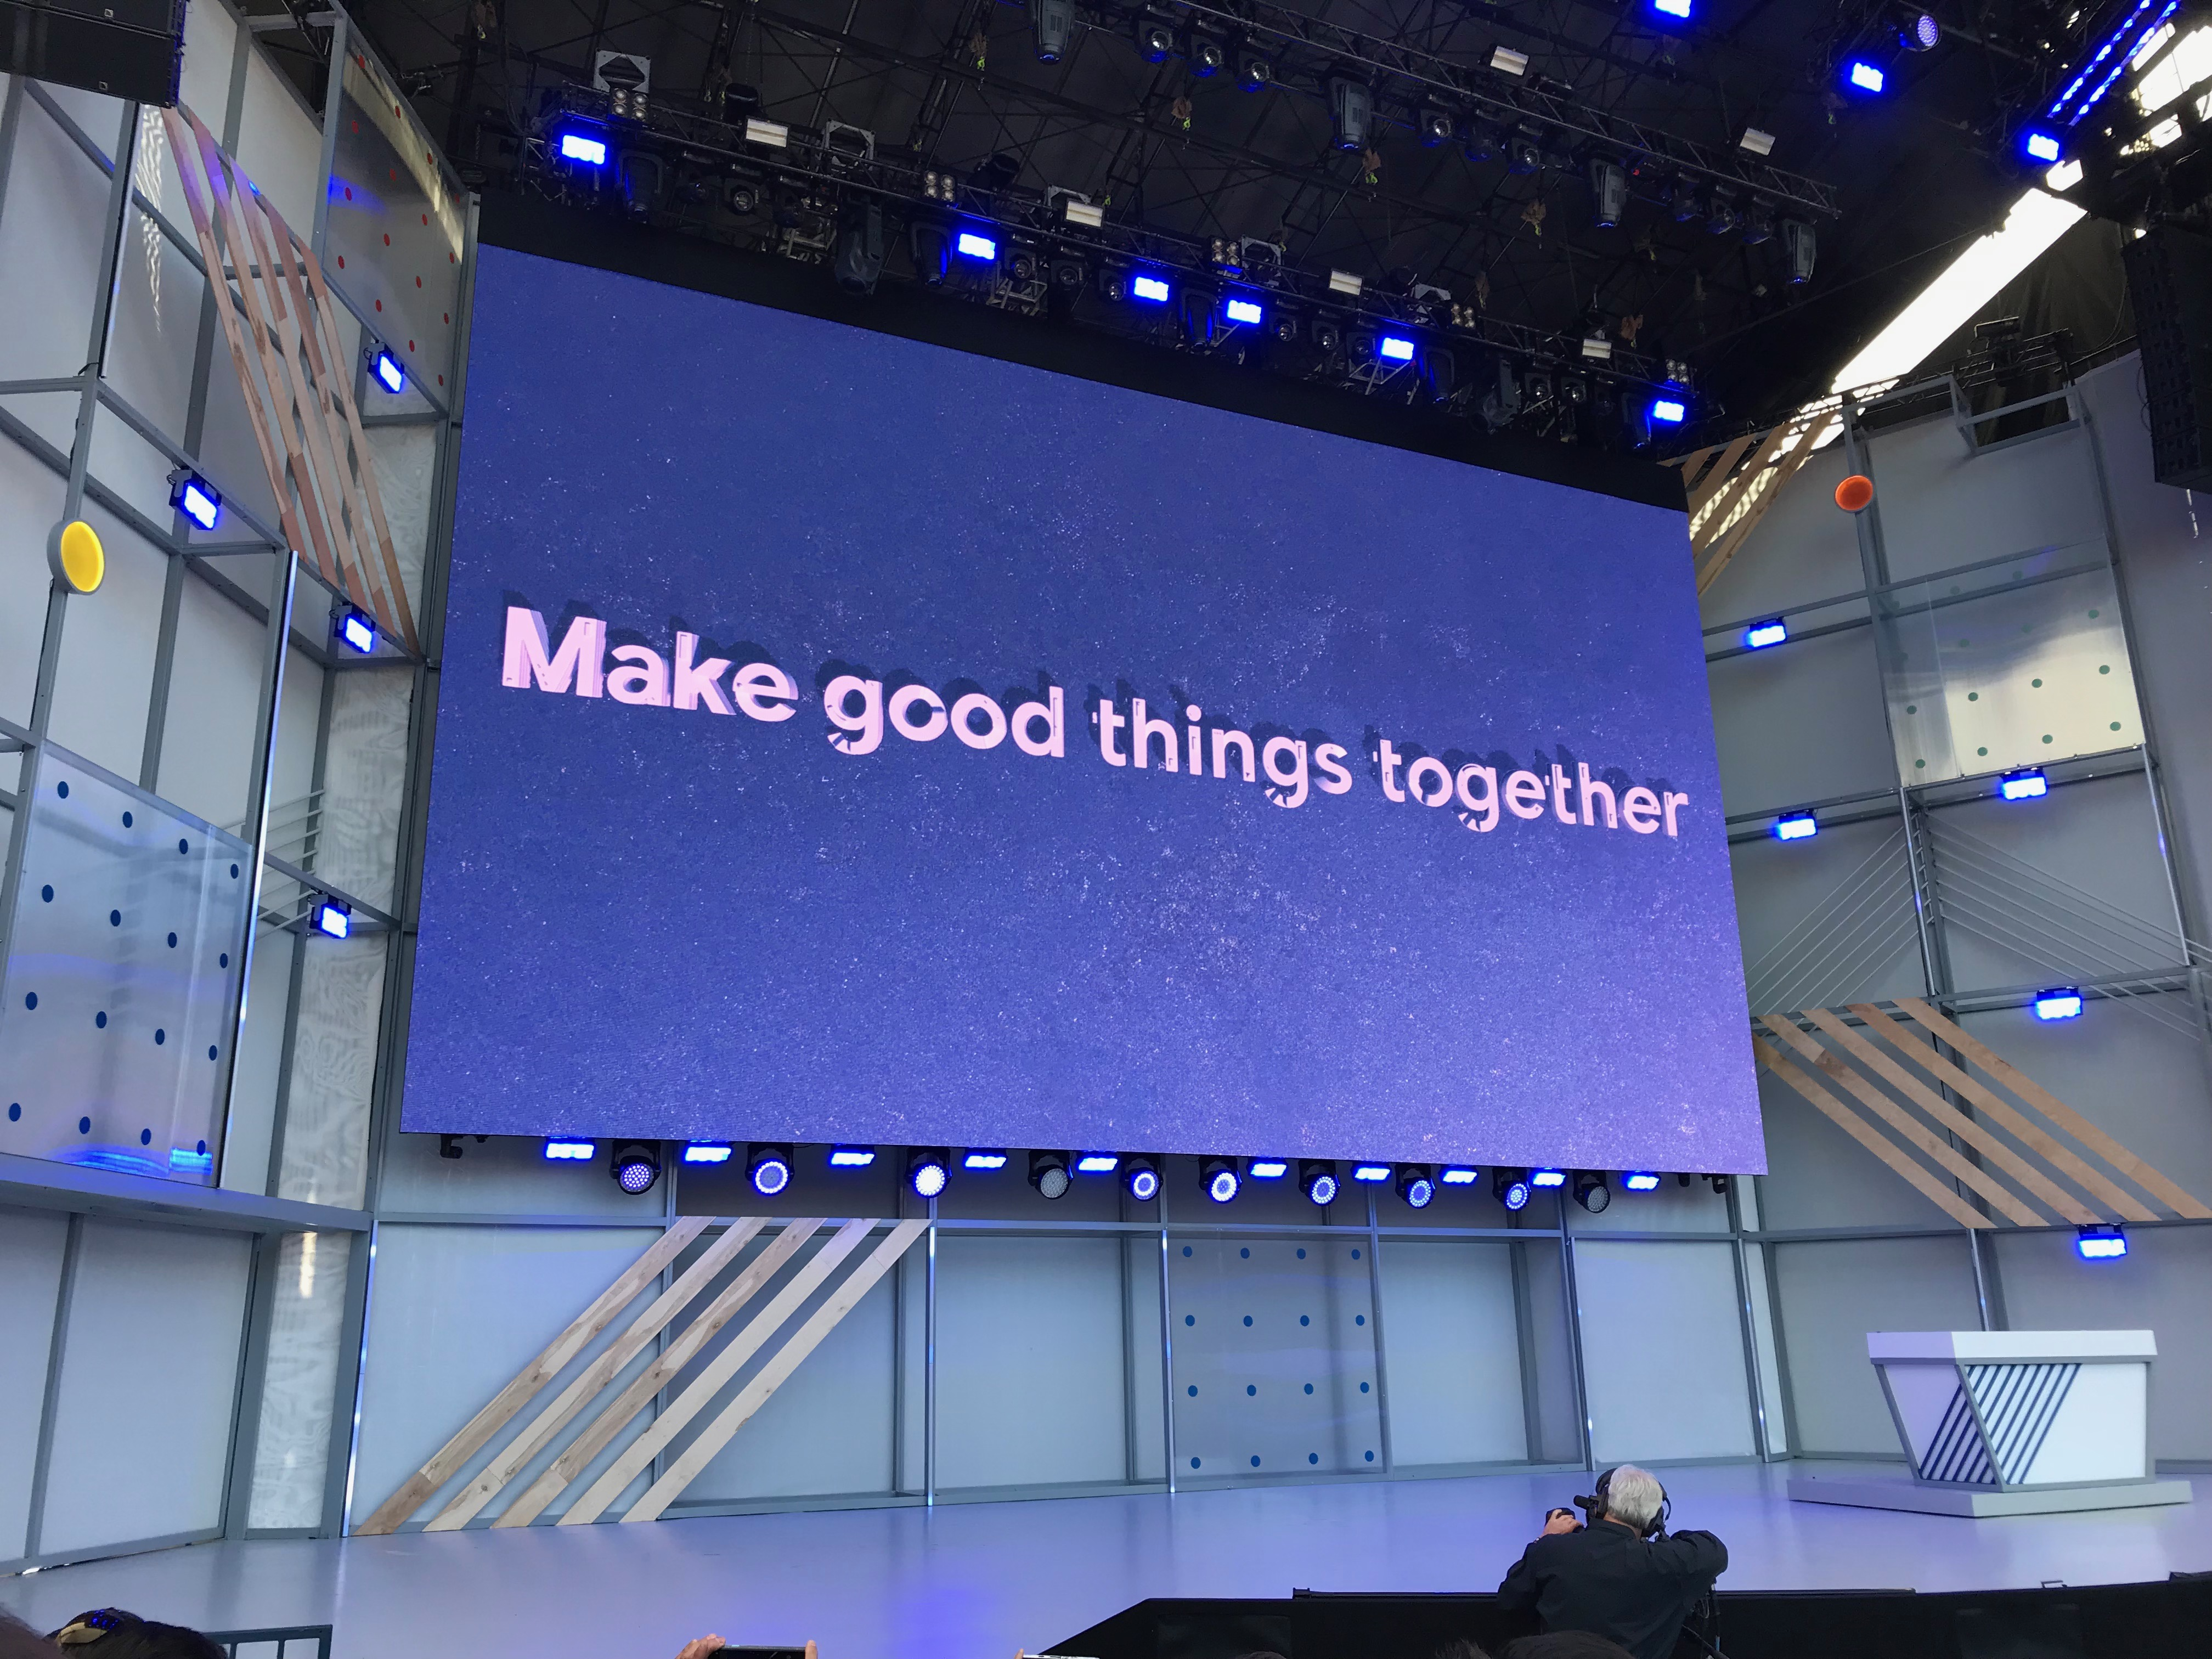 Make good things together